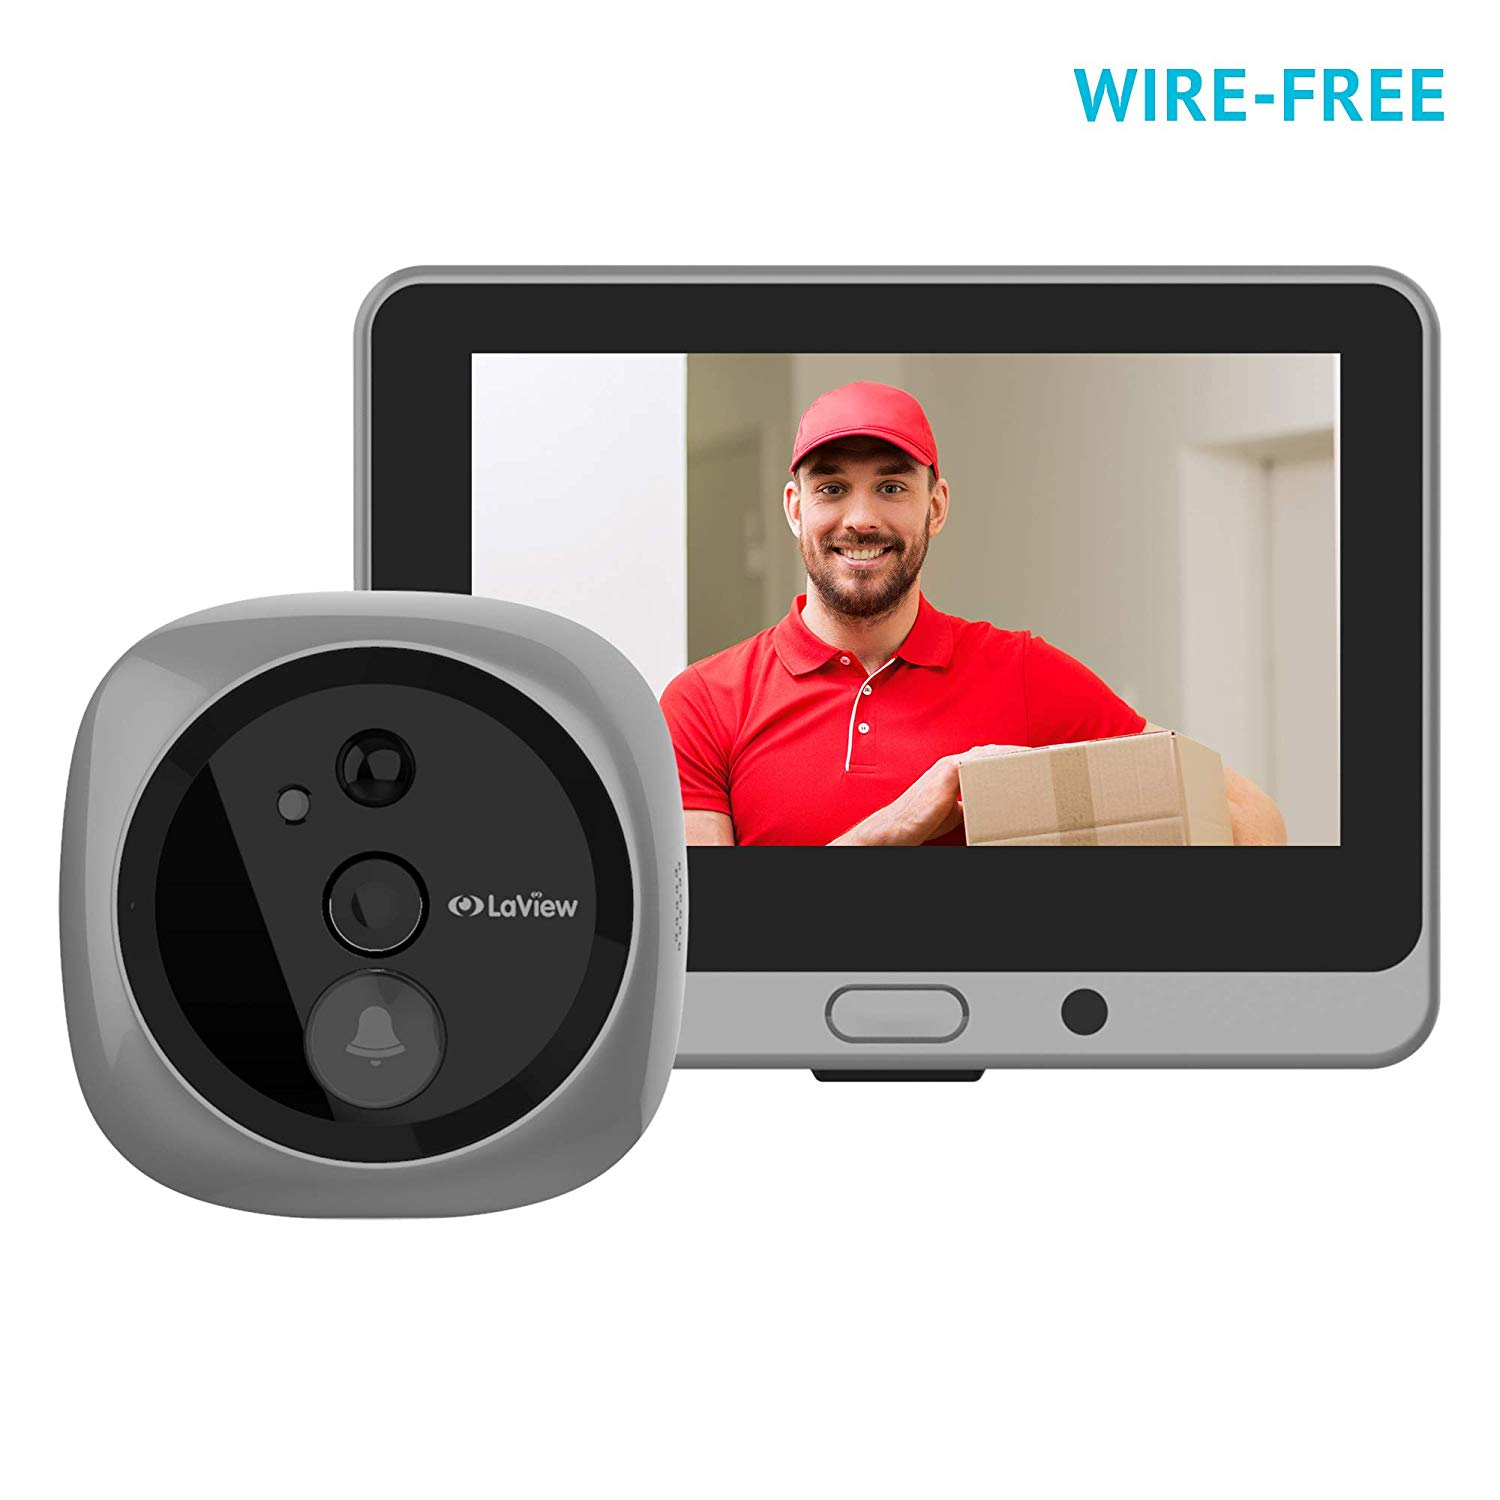 LaView Wireless Video Doorbell, Wi-Fi Door Bell Camera, Peephole Camera  with LED Touch Screen, Wide Angle/Wire-Free/Rechargeable Battery/Night ...